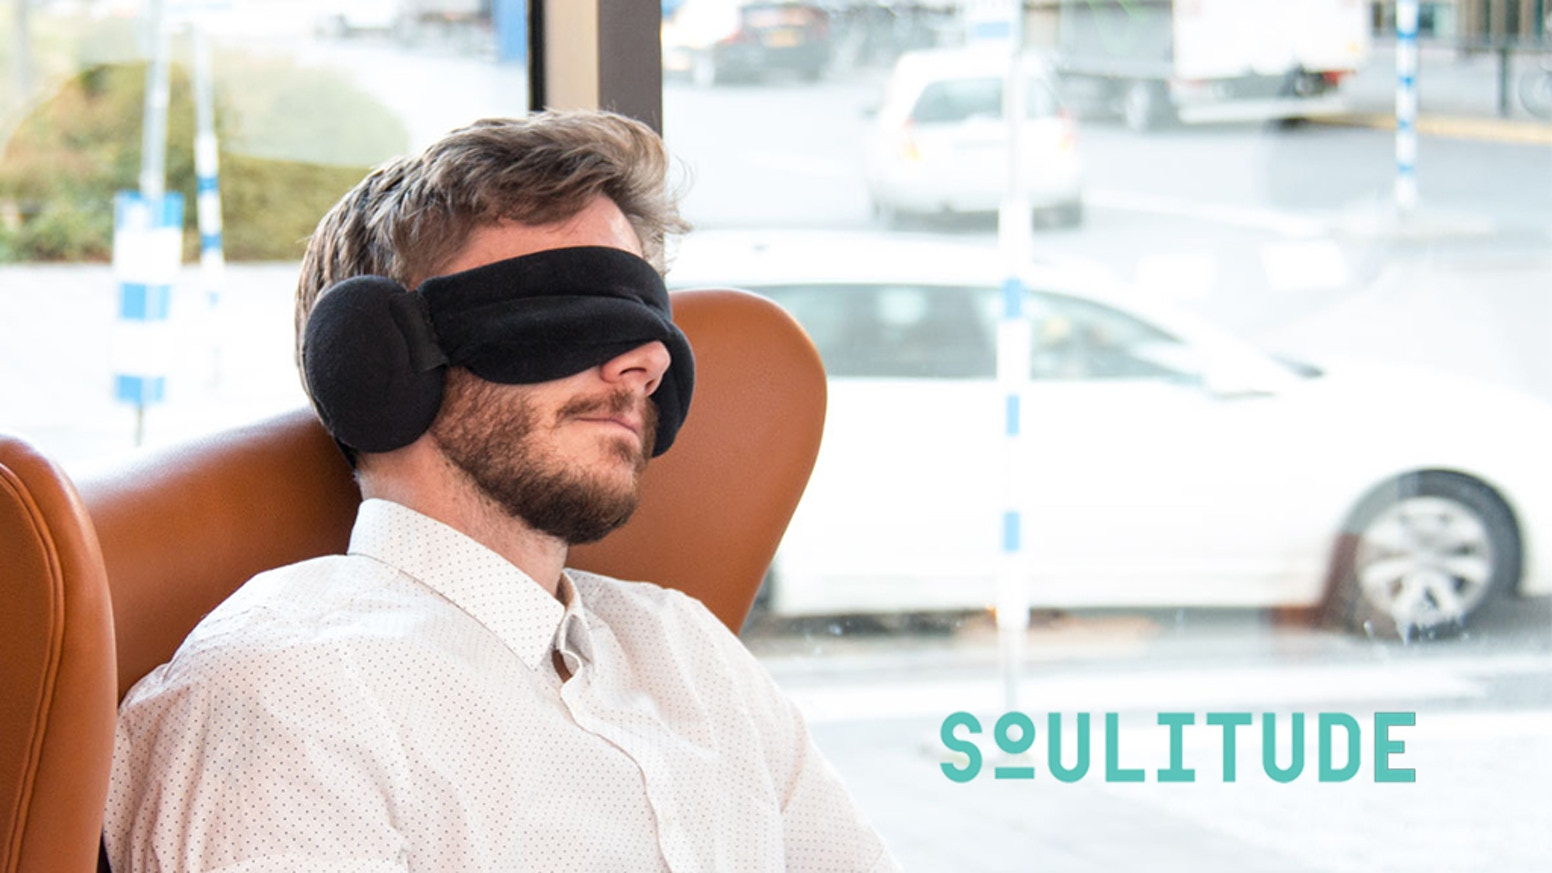 Premium 100% blackout sleep mask meets industrial grade sound-reduction earmuffs. Stylish and super comfortable. Enjoy some solitude.